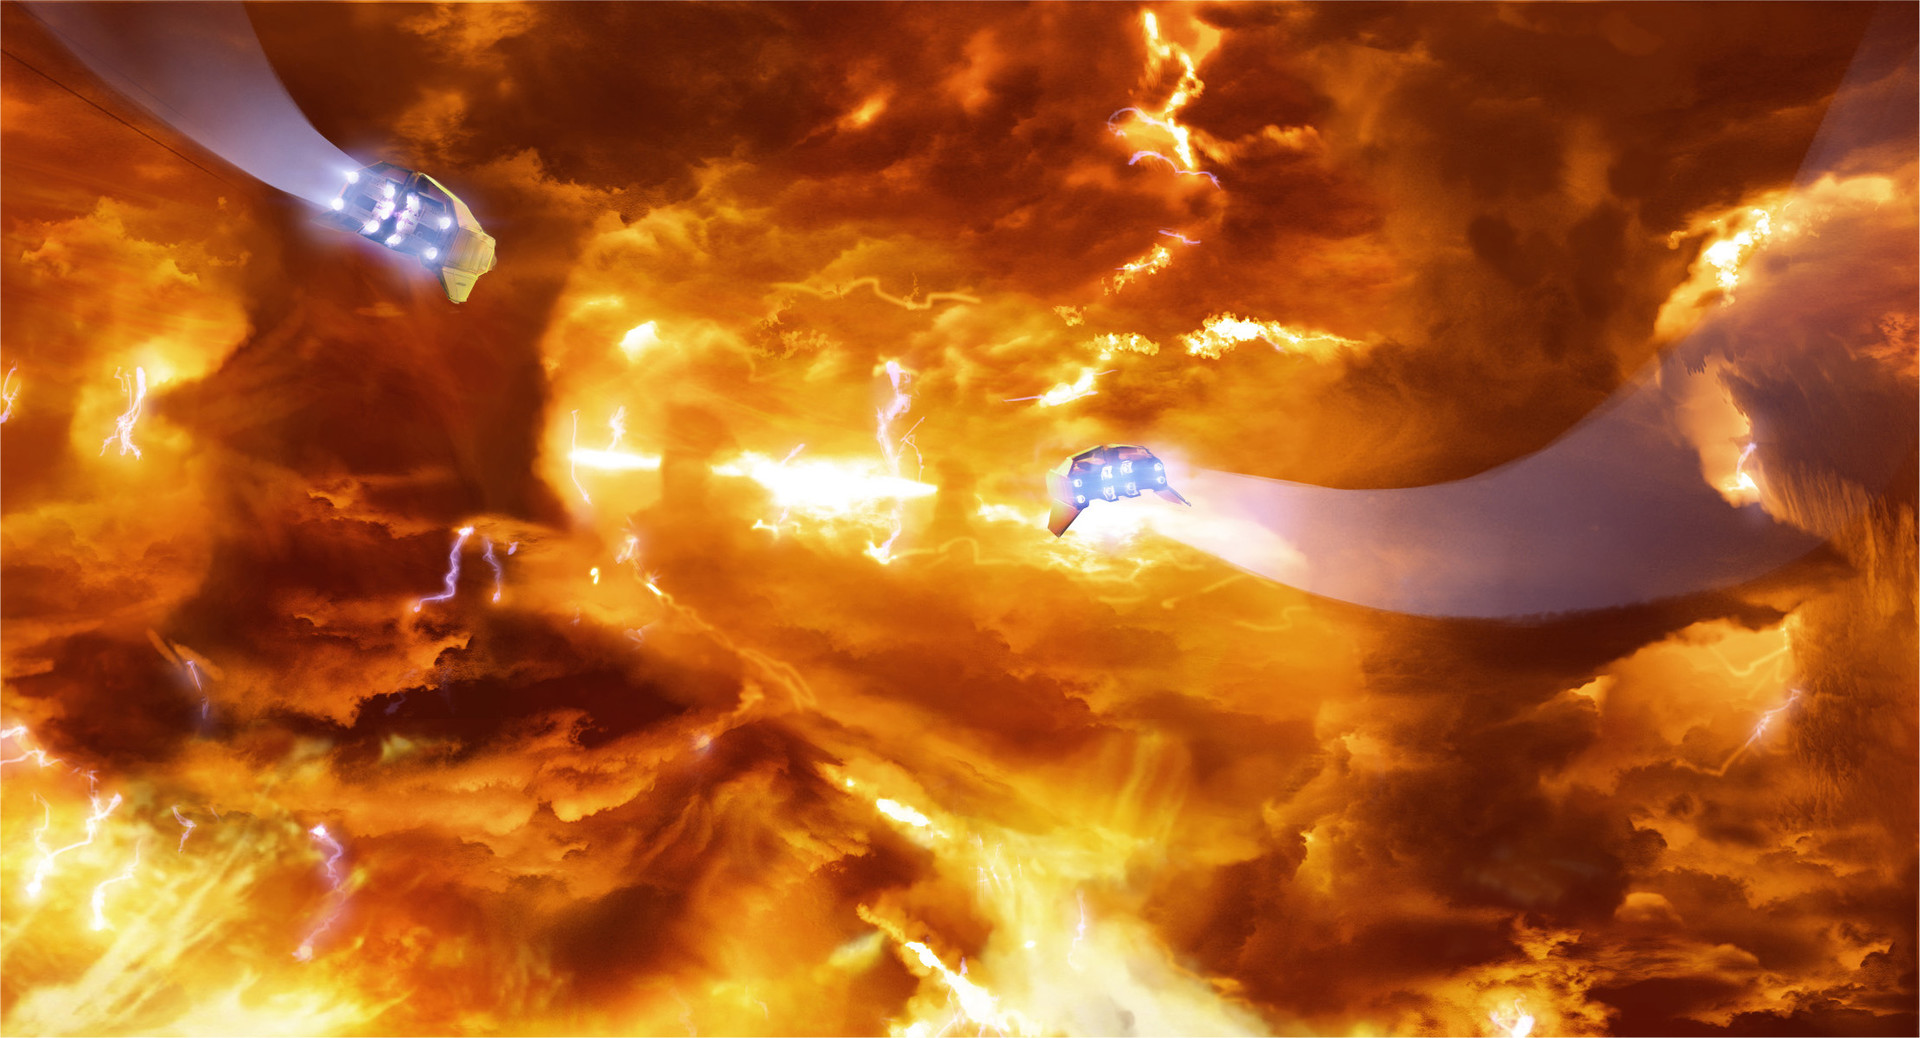 --formed from boiling clouds of flame above and a molten sea of liquid fire below.